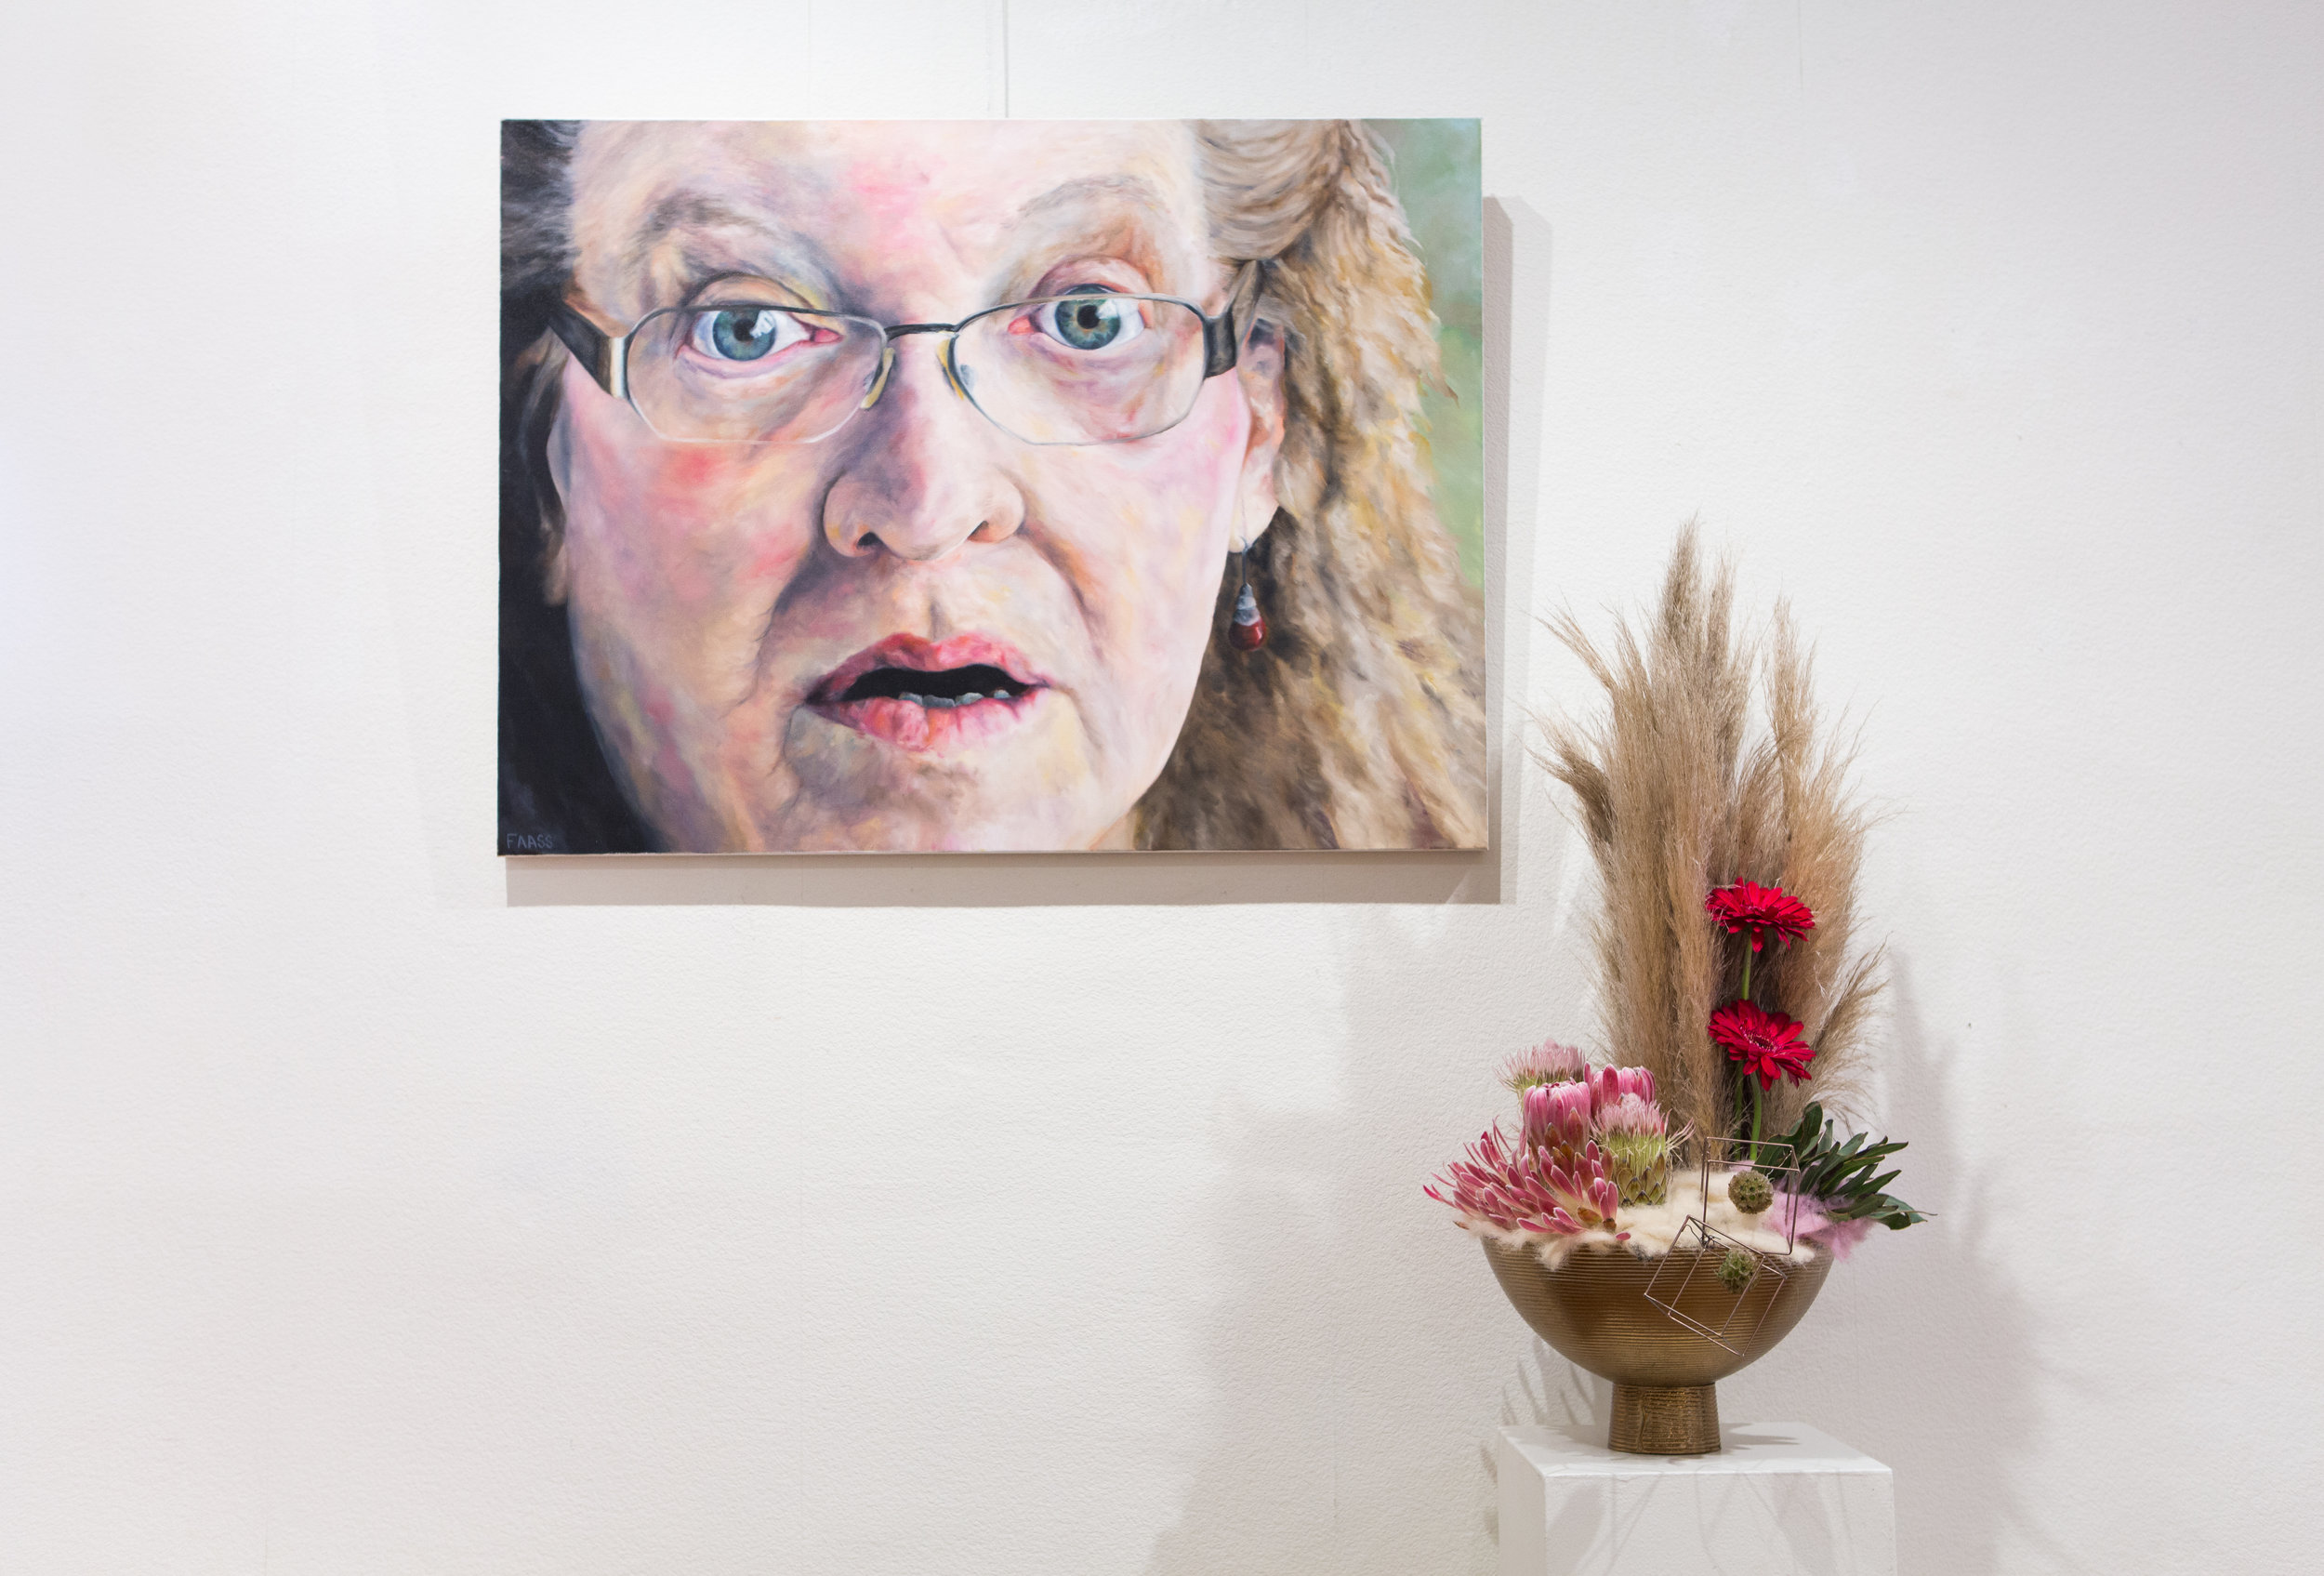 The Tone of Disbelief  by Jacqueline Faass so wonderfully interpreted by Beth Hohensee,  Studio Flora Diva